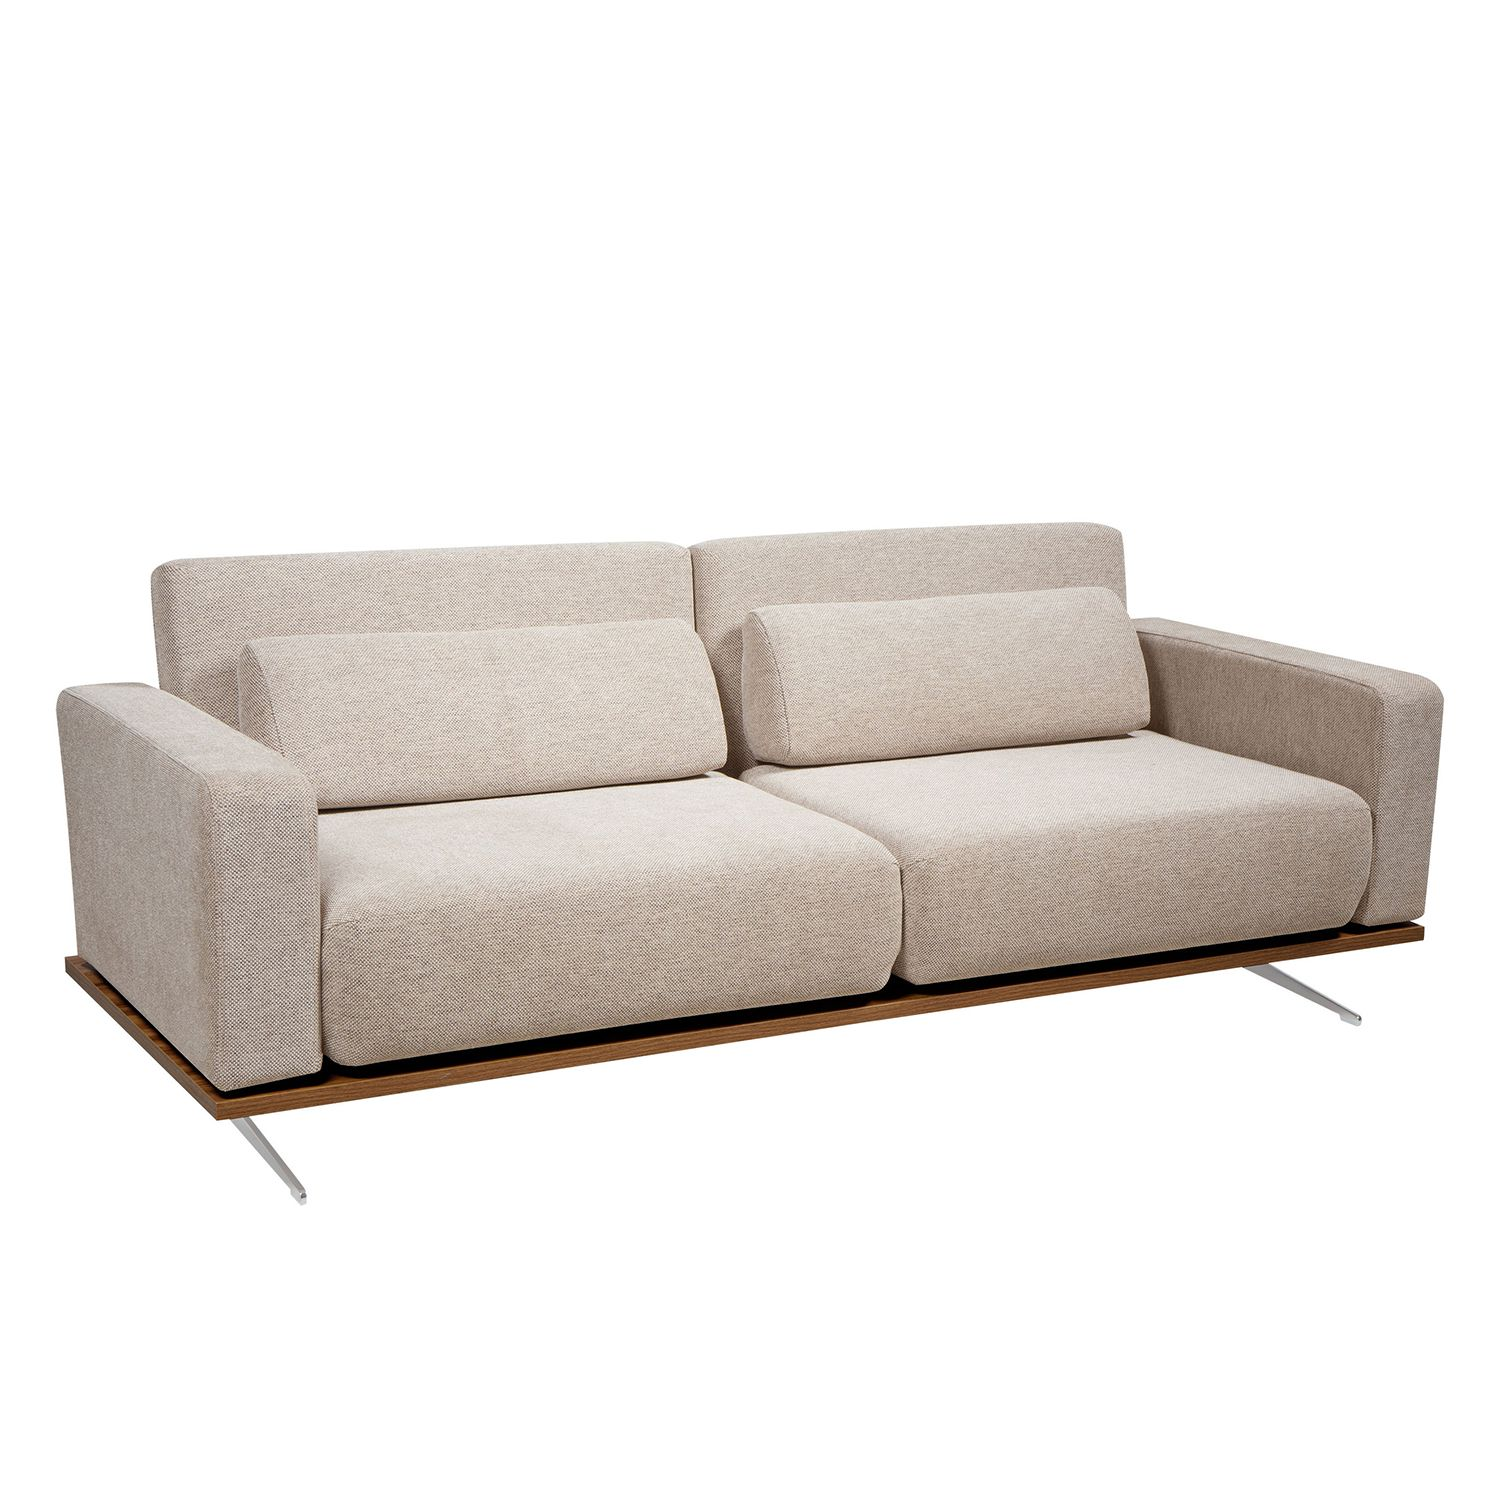 gro z gig gorgeous copperfield sofa zeitgen ssisch die besten wohnideen. Black Bedroom Furniture Sets. Home Design Ideas